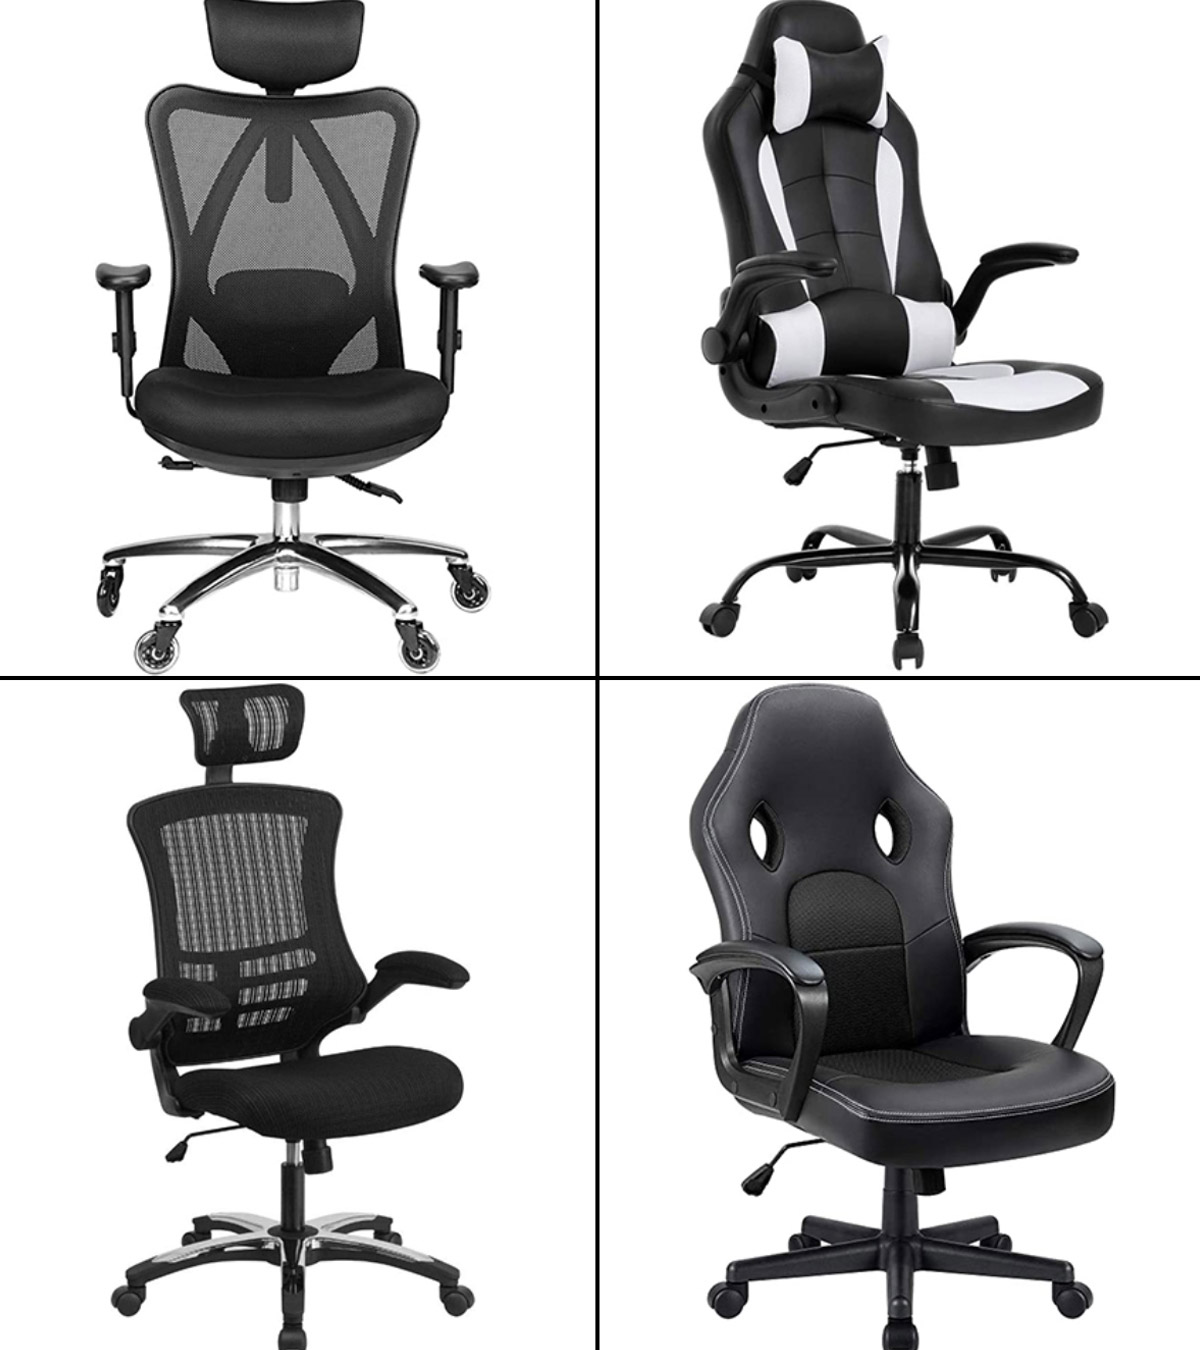 11 Best Chairs For Neck Pain In 2021